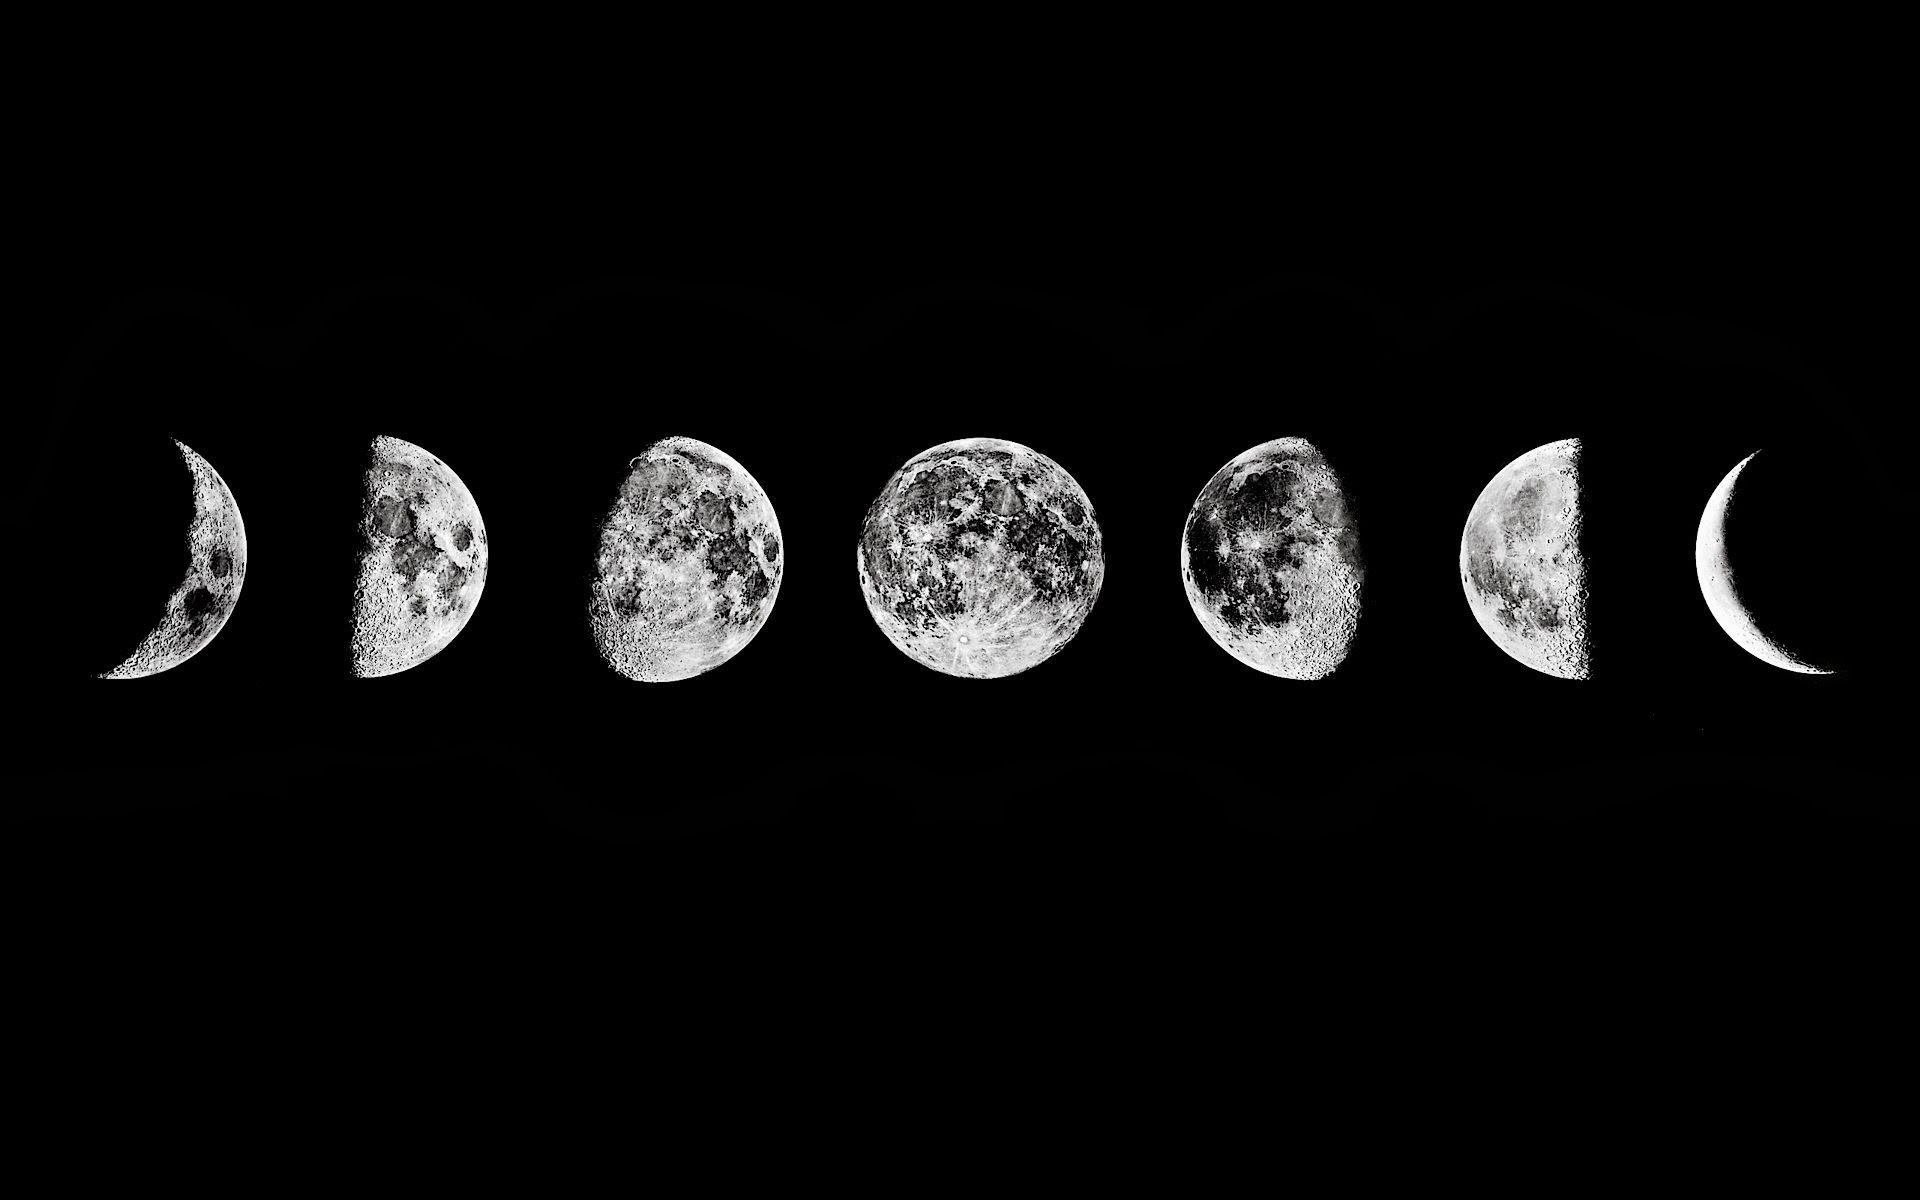 Moon Phase Wallpaper For Android